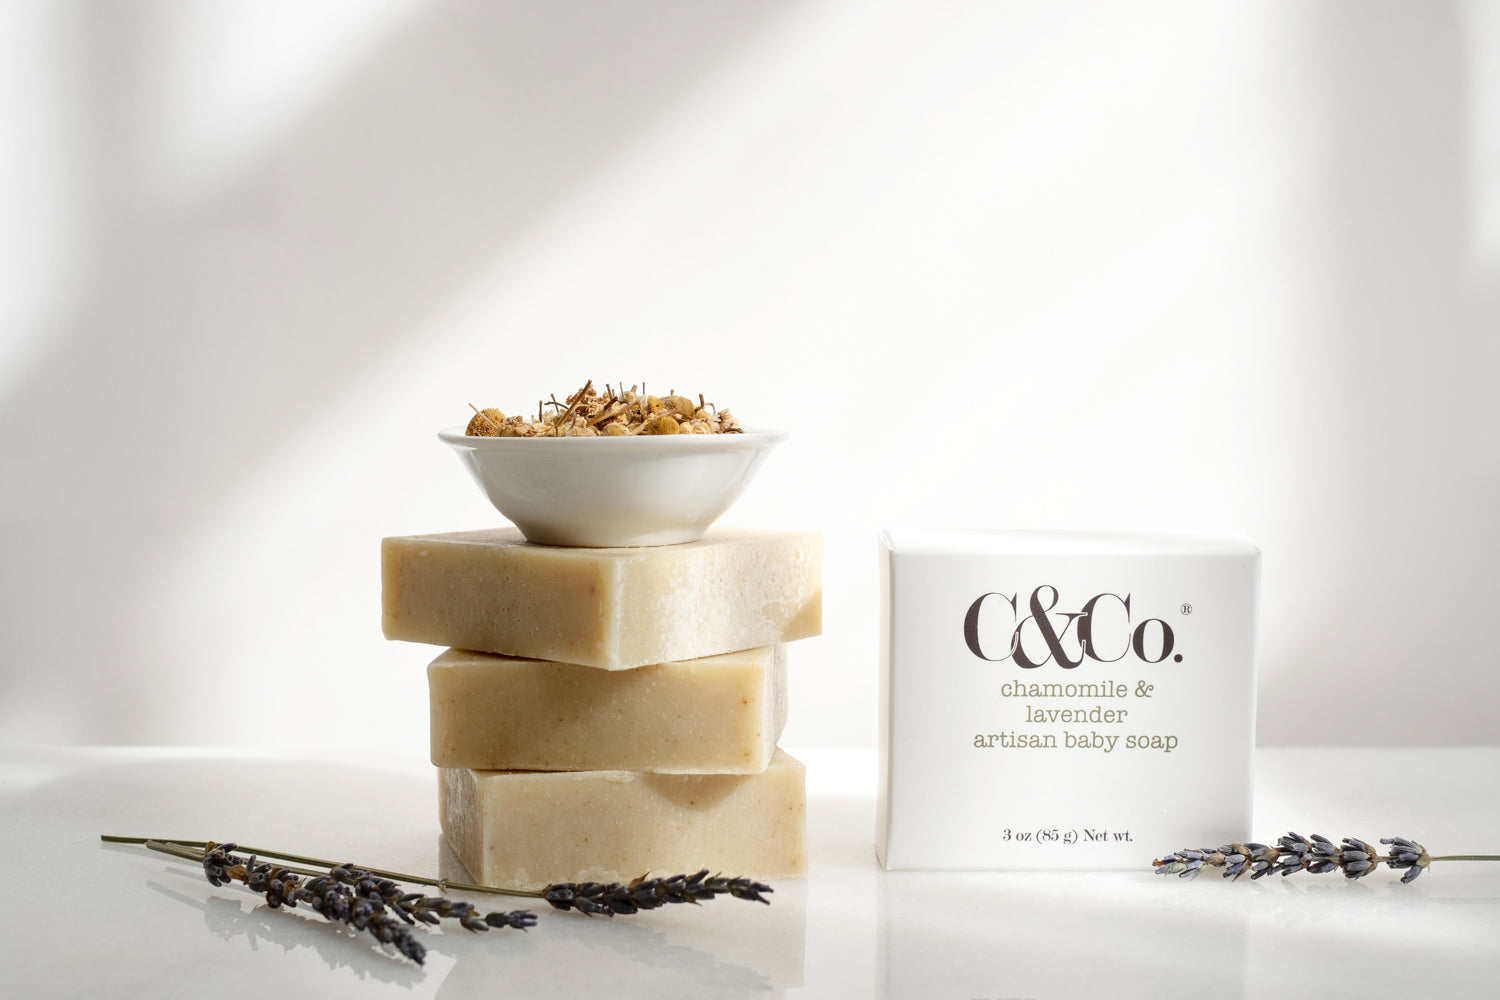 Chamomile & Lavender Artisan Baby Soap - C & Co.